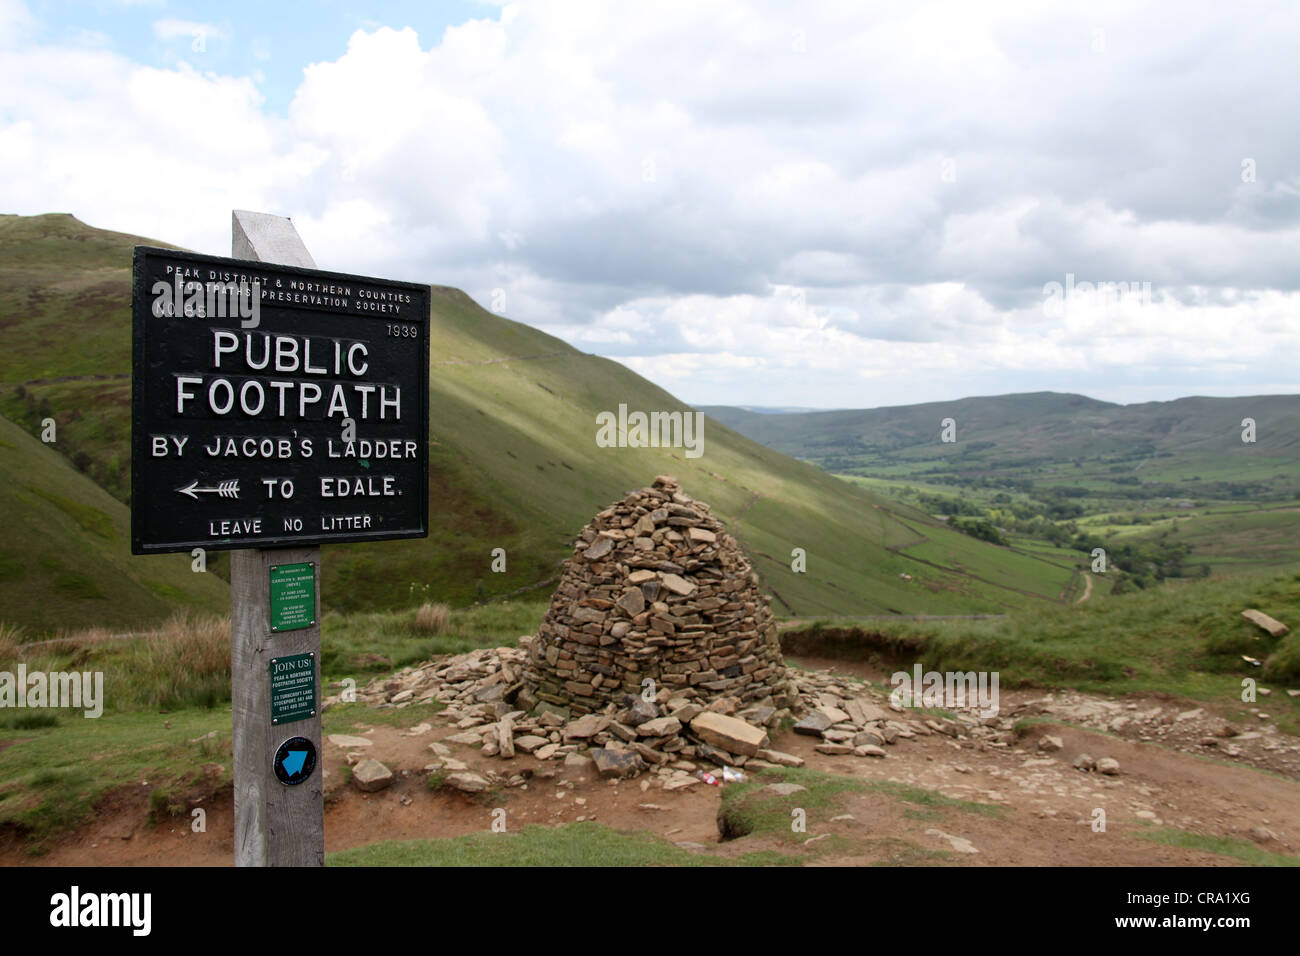 Public Footpath Sign on Kinder Scout - Stock Image